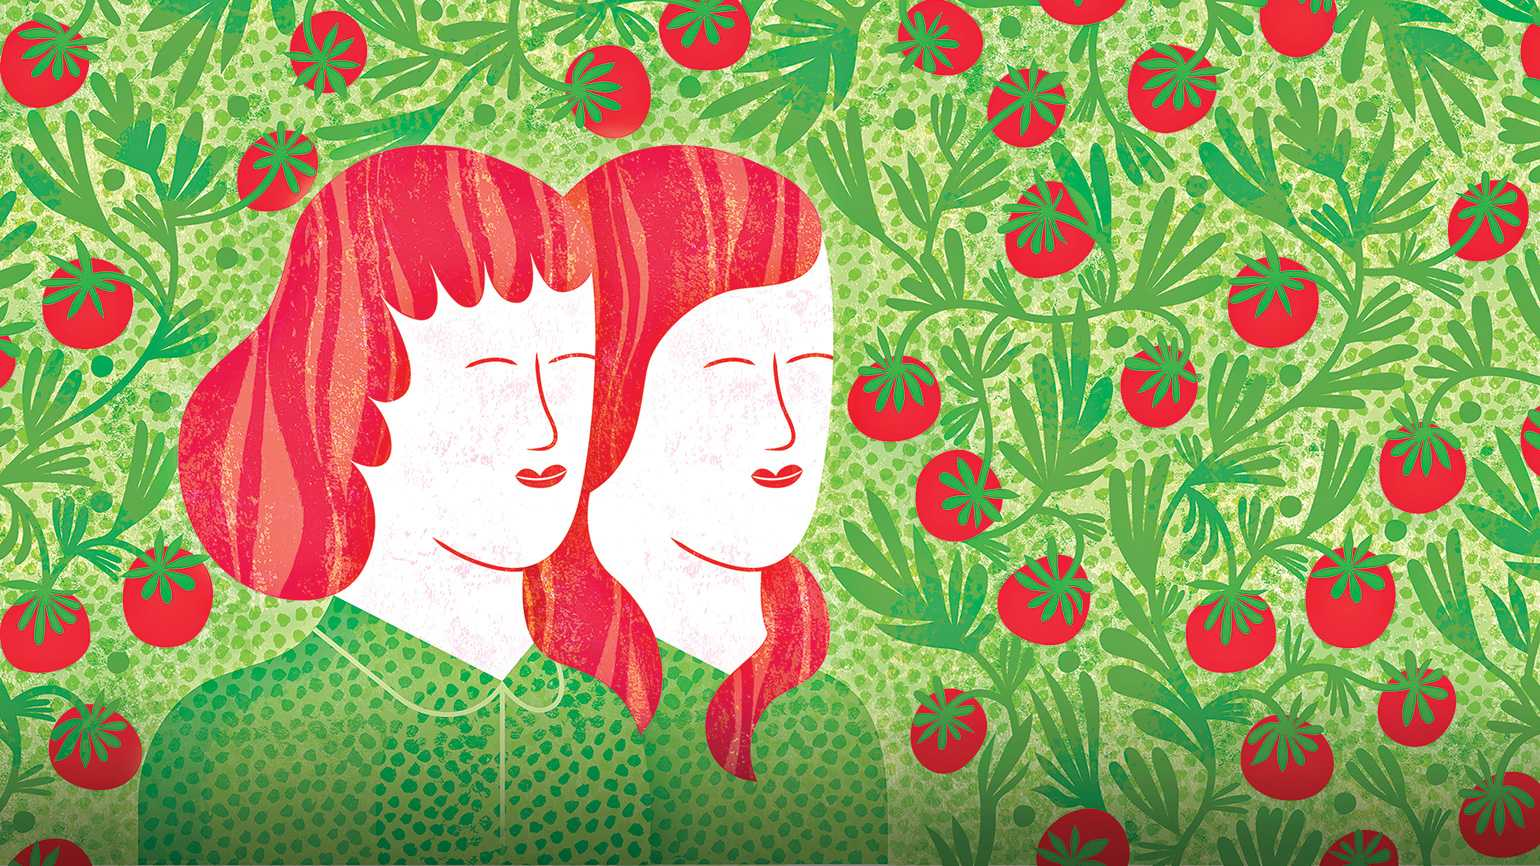 Artist James O'Briens' rendering of a mother and daughter in a tomato patch